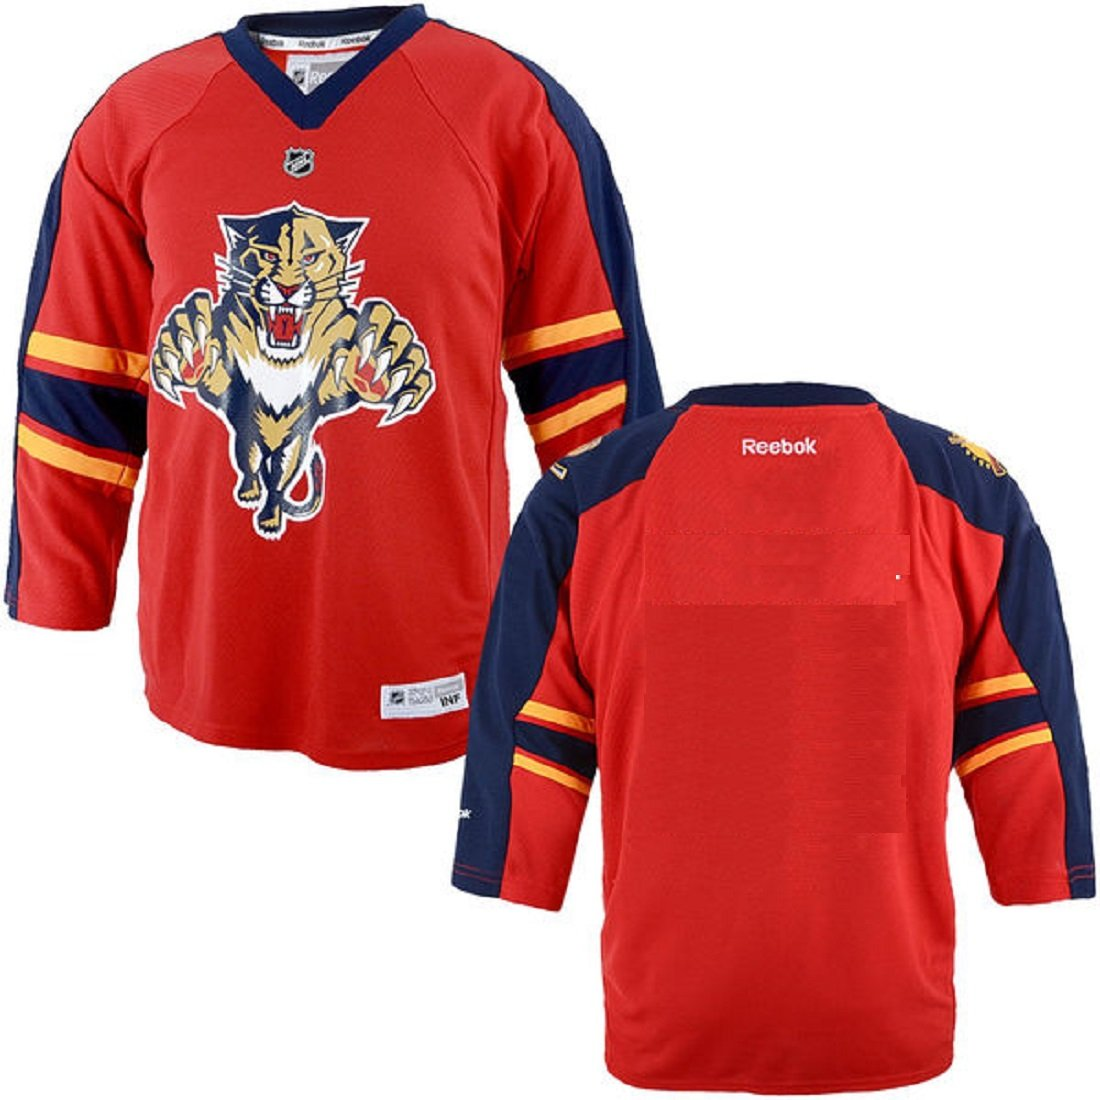 1191e4ed Florida Panthers NHL Reebok Jersey Infant 12-24 months Red